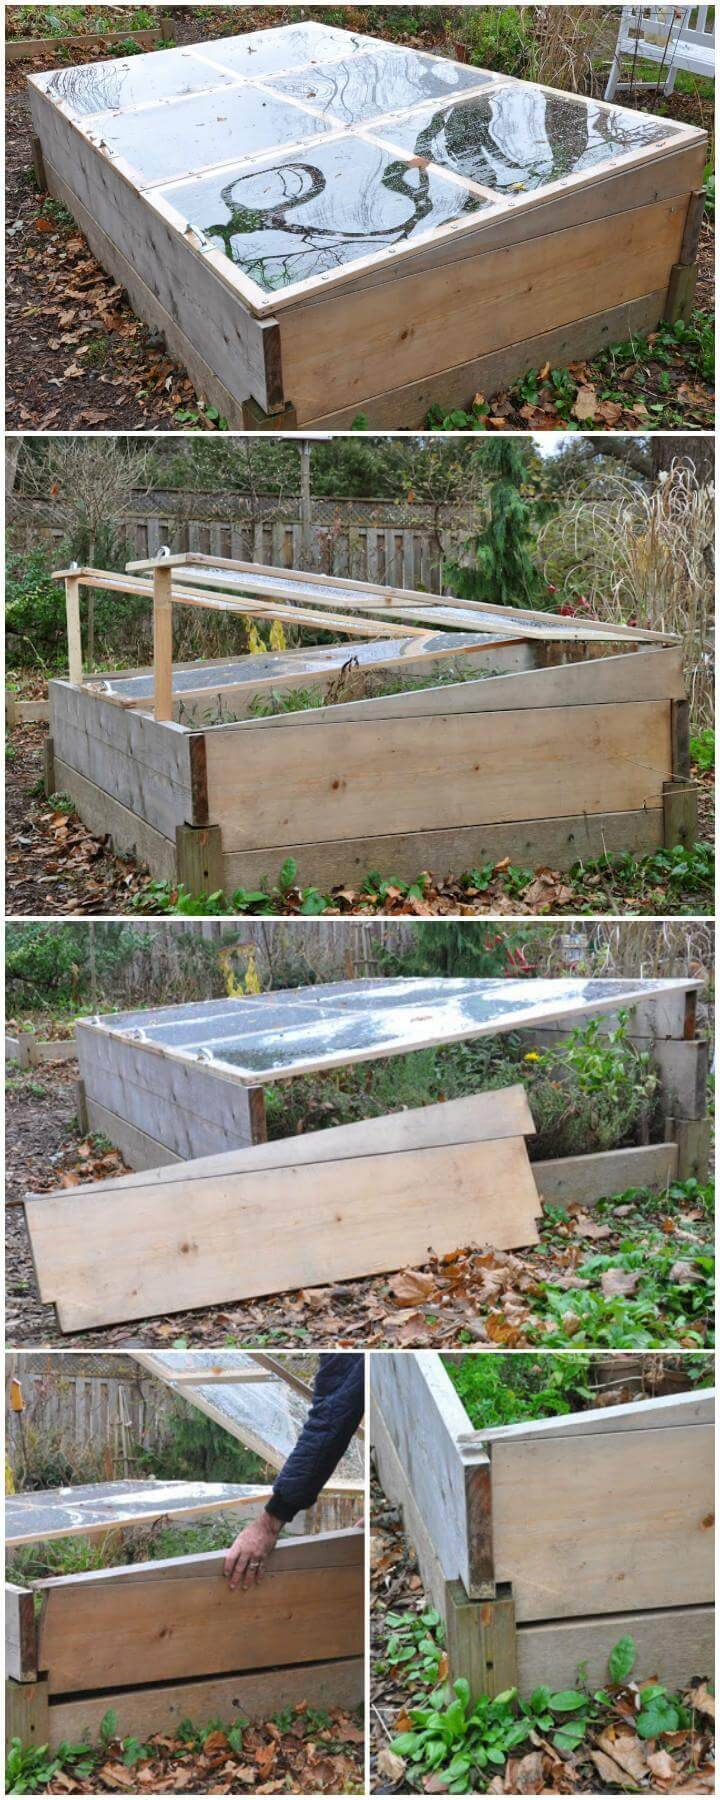 DIY Elegant Mini Self-Made Coldframe or Greenhouse